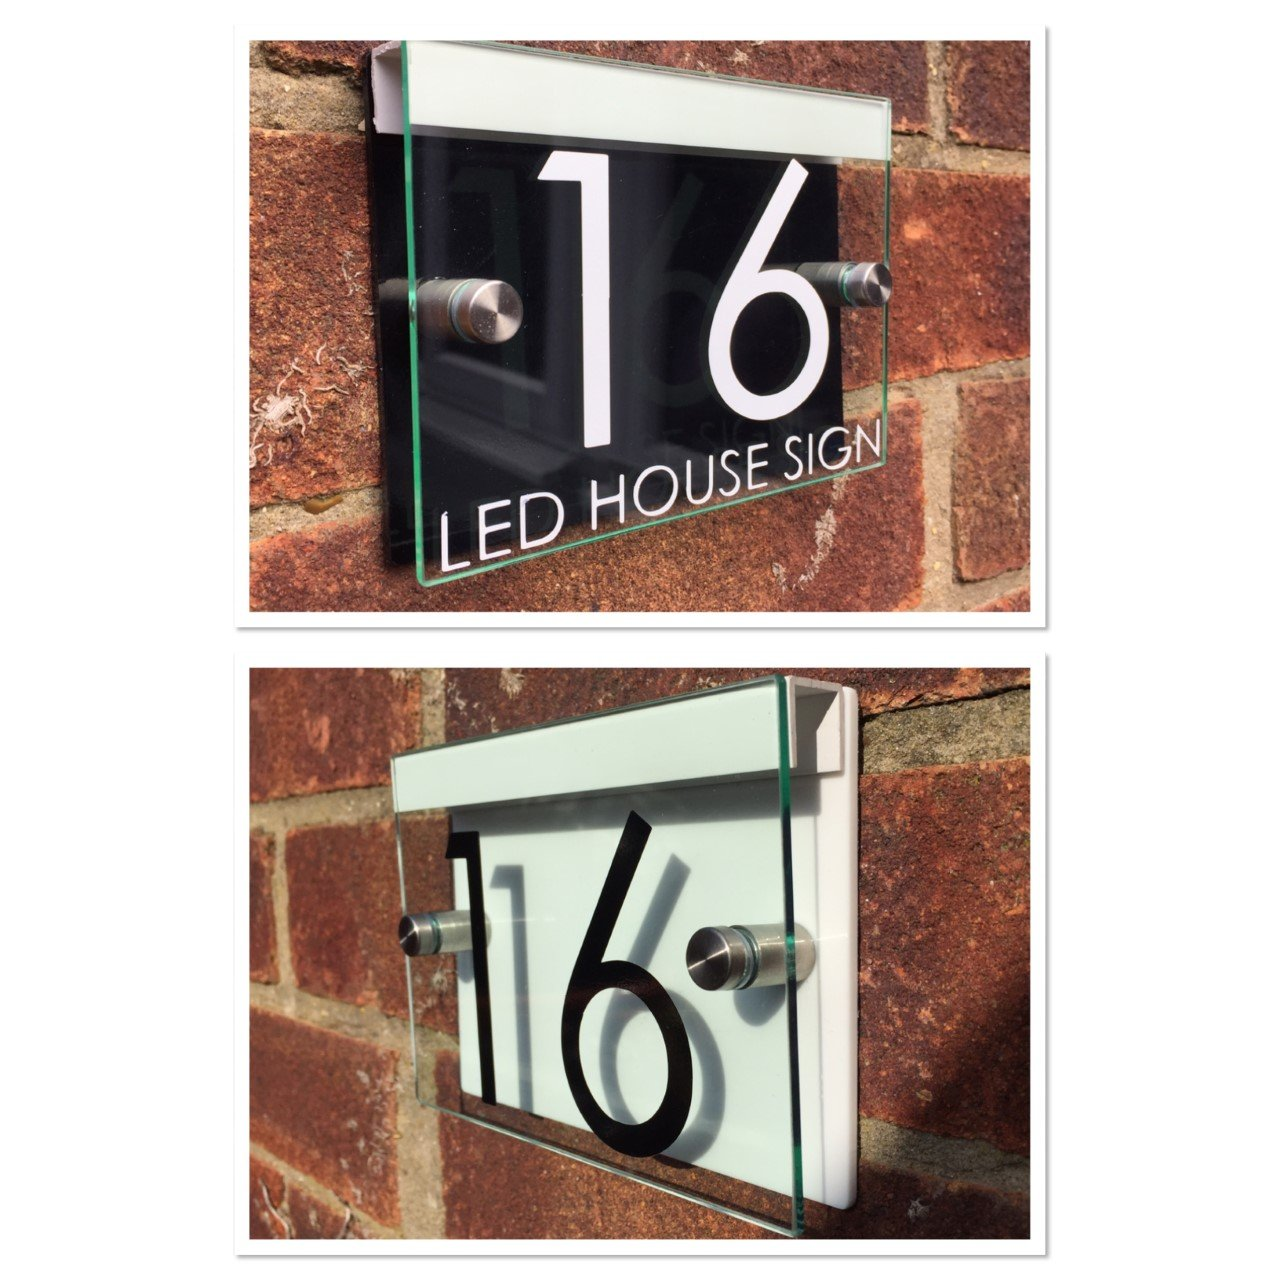 Modern house sign plaque door number street glass acrylic black white led holder amazon co uk kitchen home